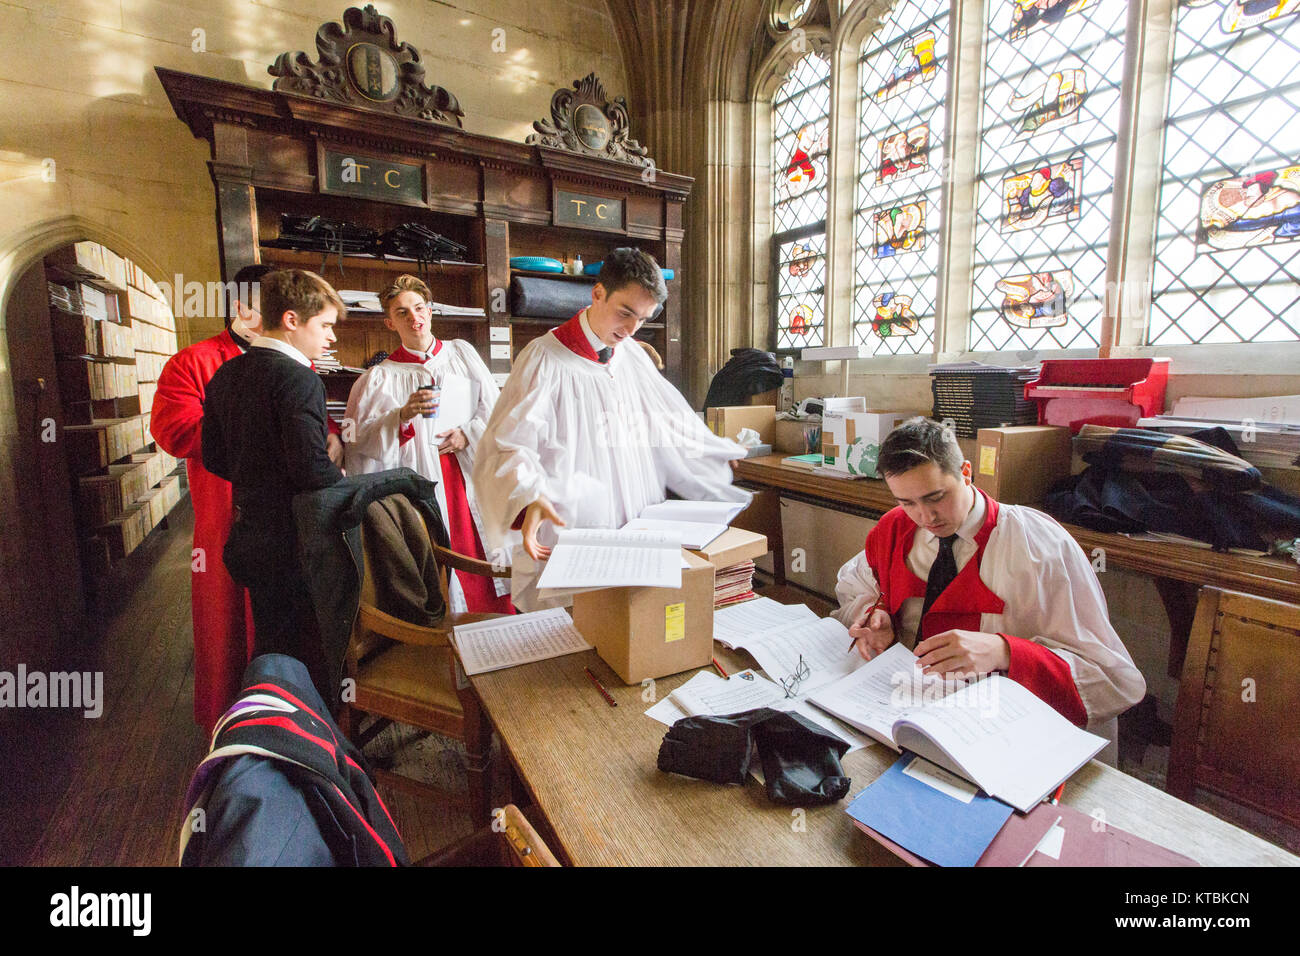 The Kings College Choir In Cambridge Rehearsing For Festival Of Nine Lessons And Carols